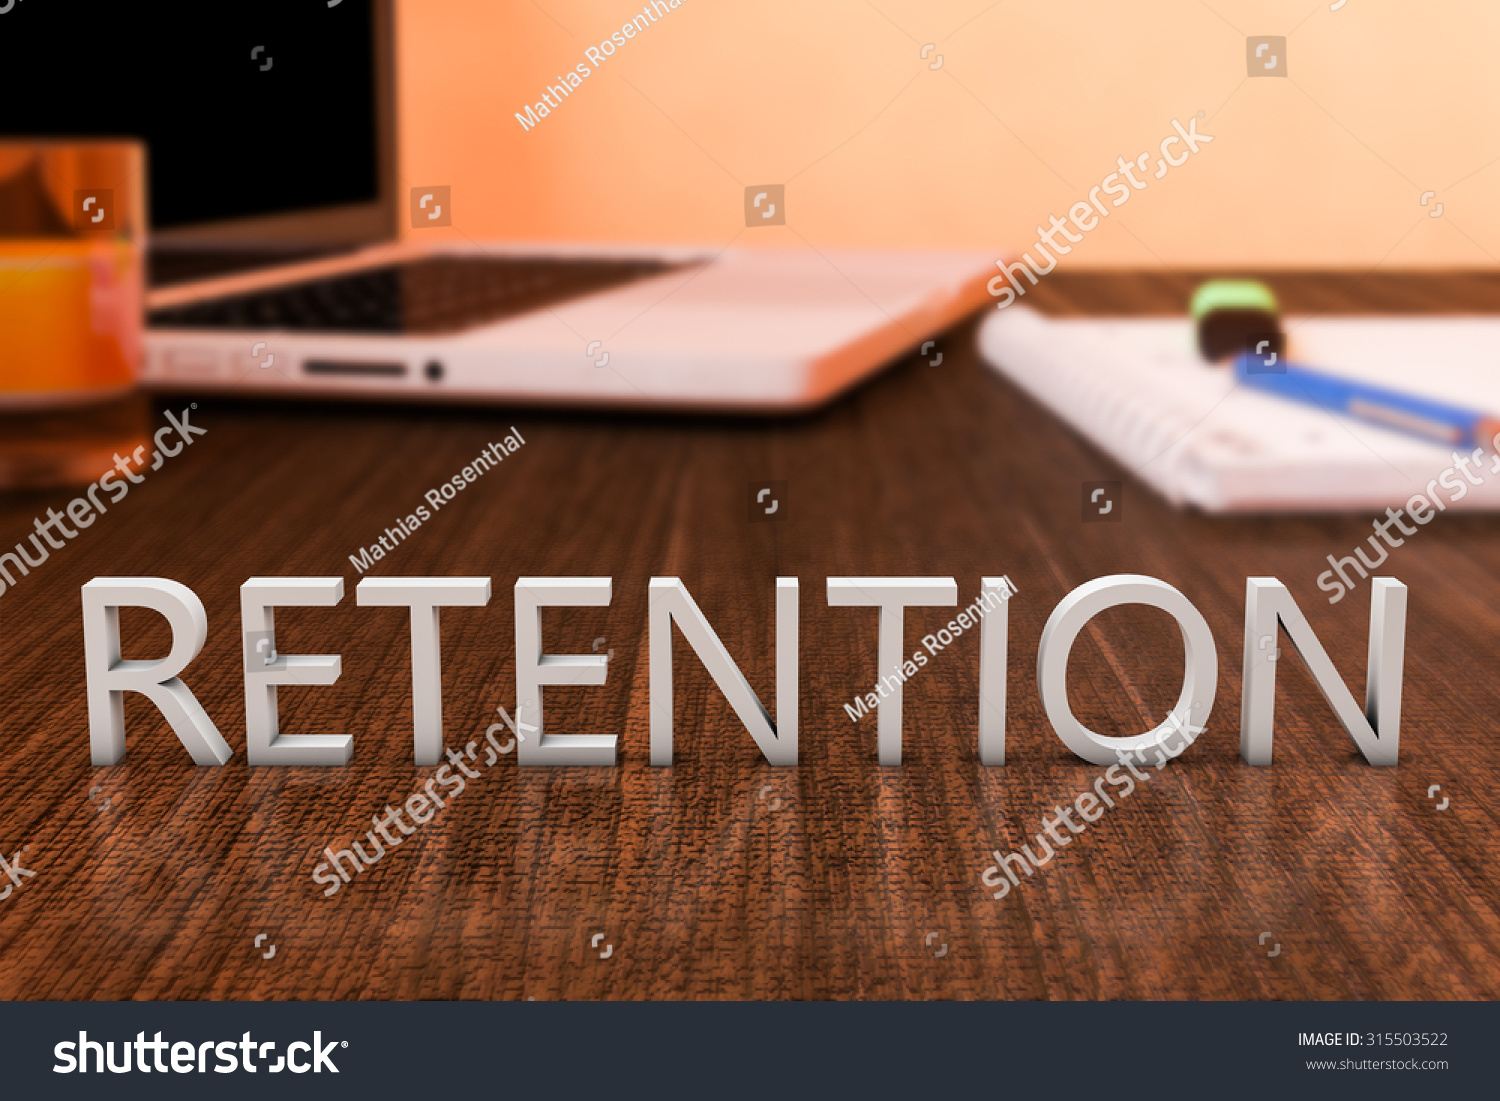 retention letters on wooden desk laptop stock illustration 315503522